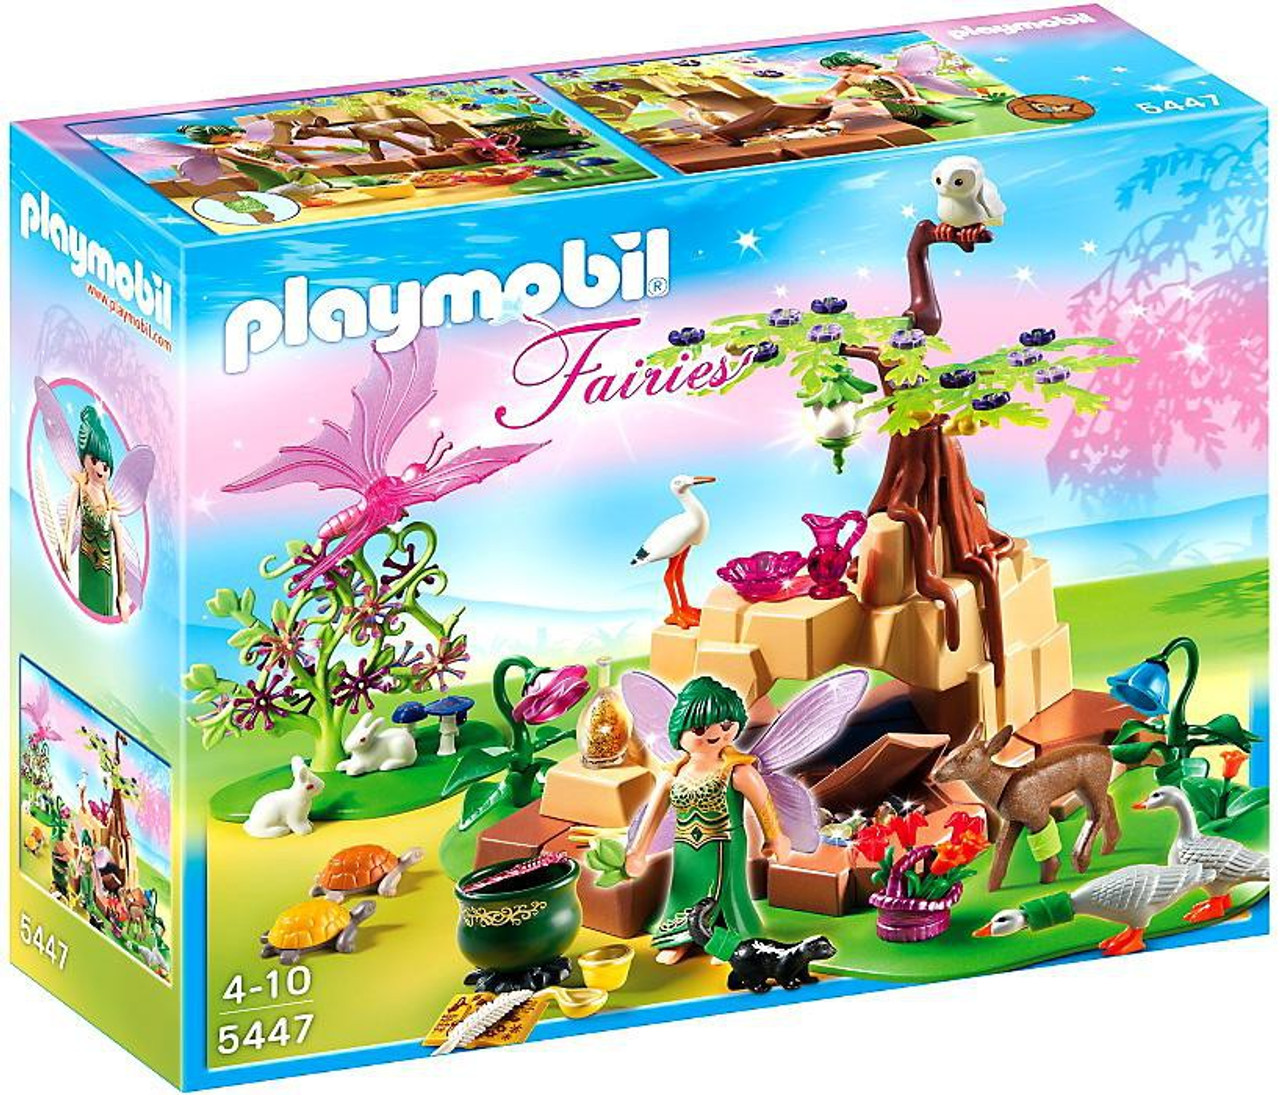 Playmobil Fairies Healing Fairy Elixia in Animal Forest Set #5447